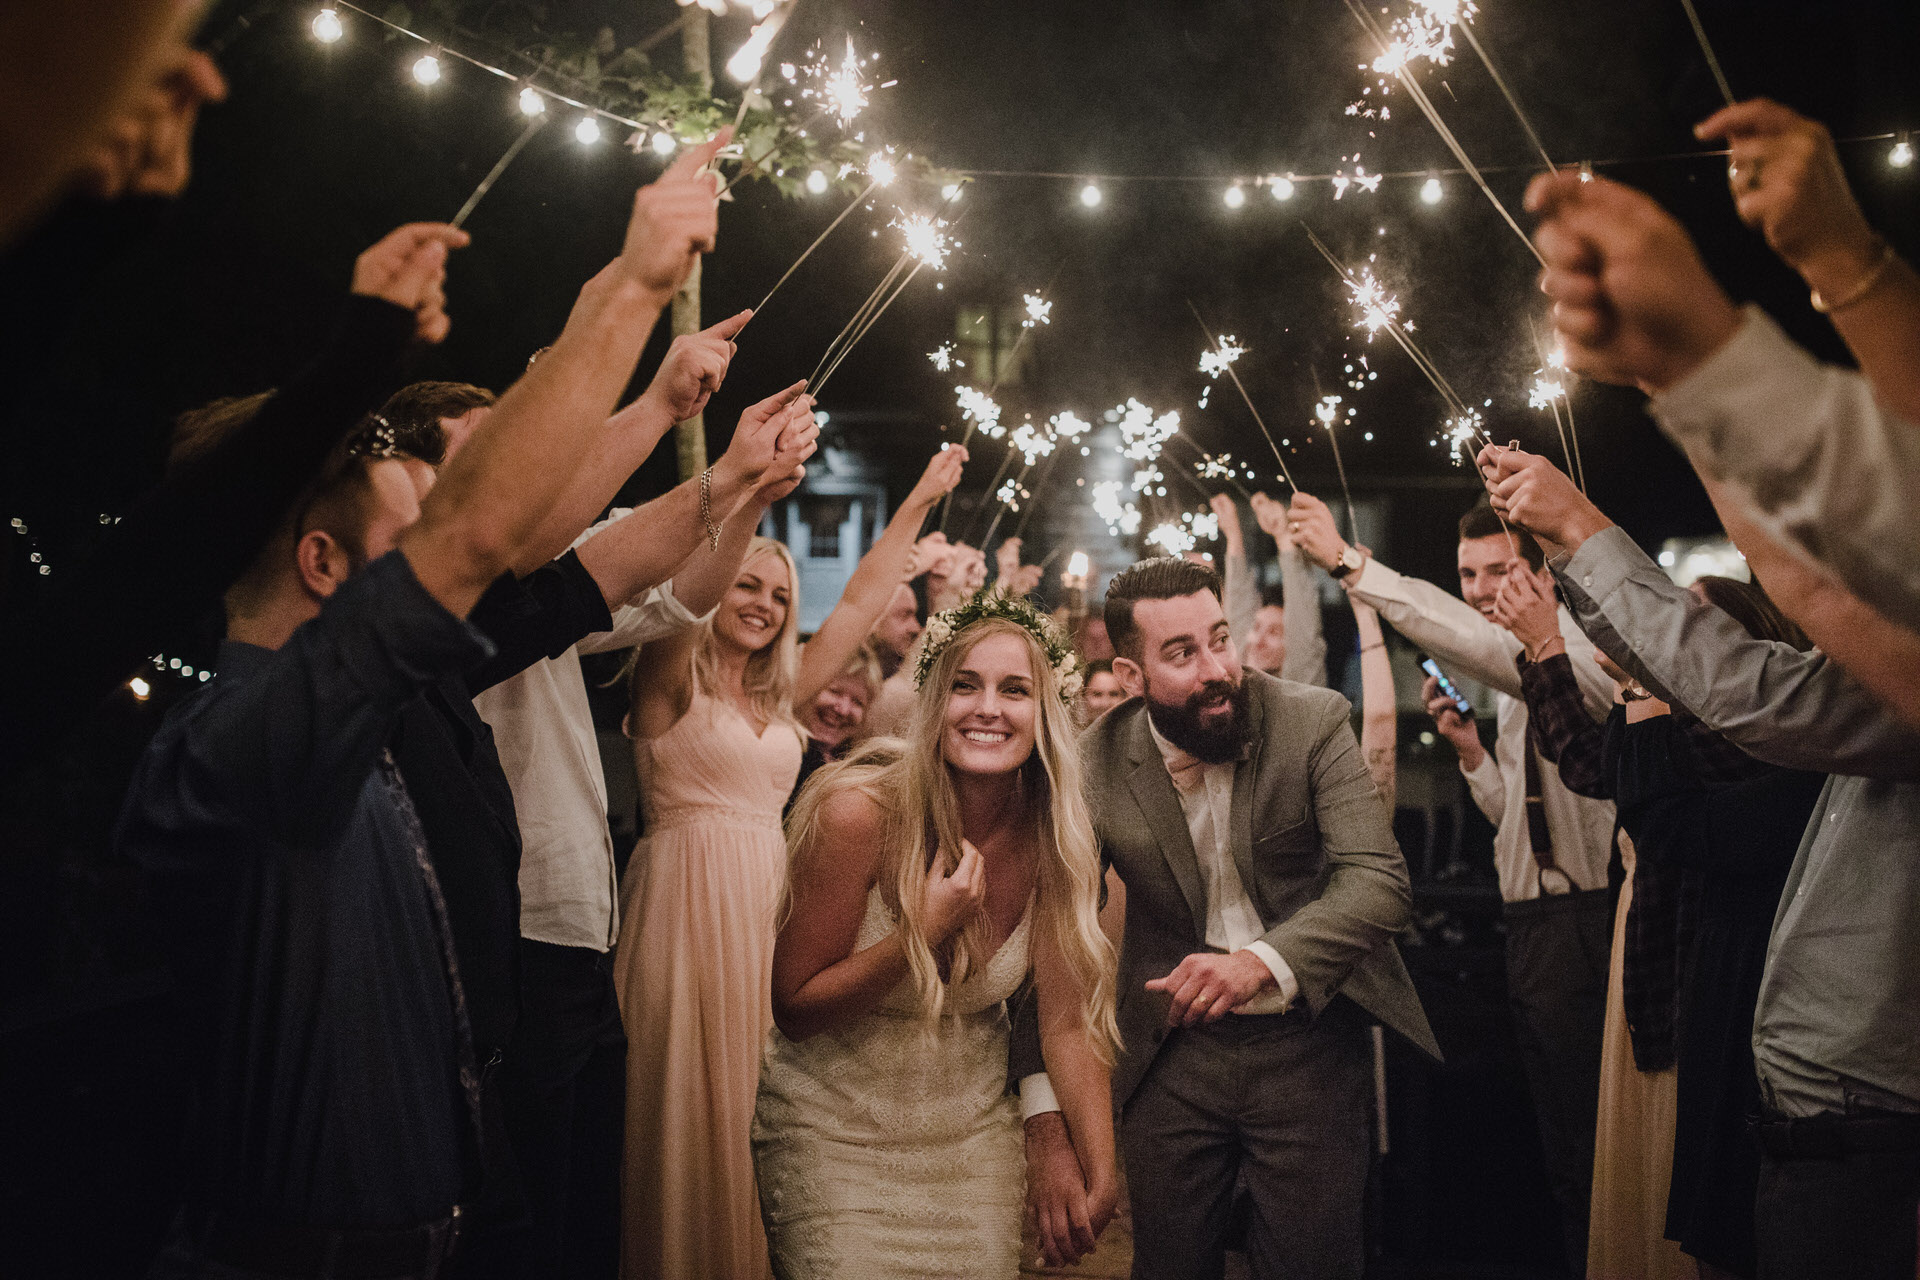 Muskoka Wedding - sparklers